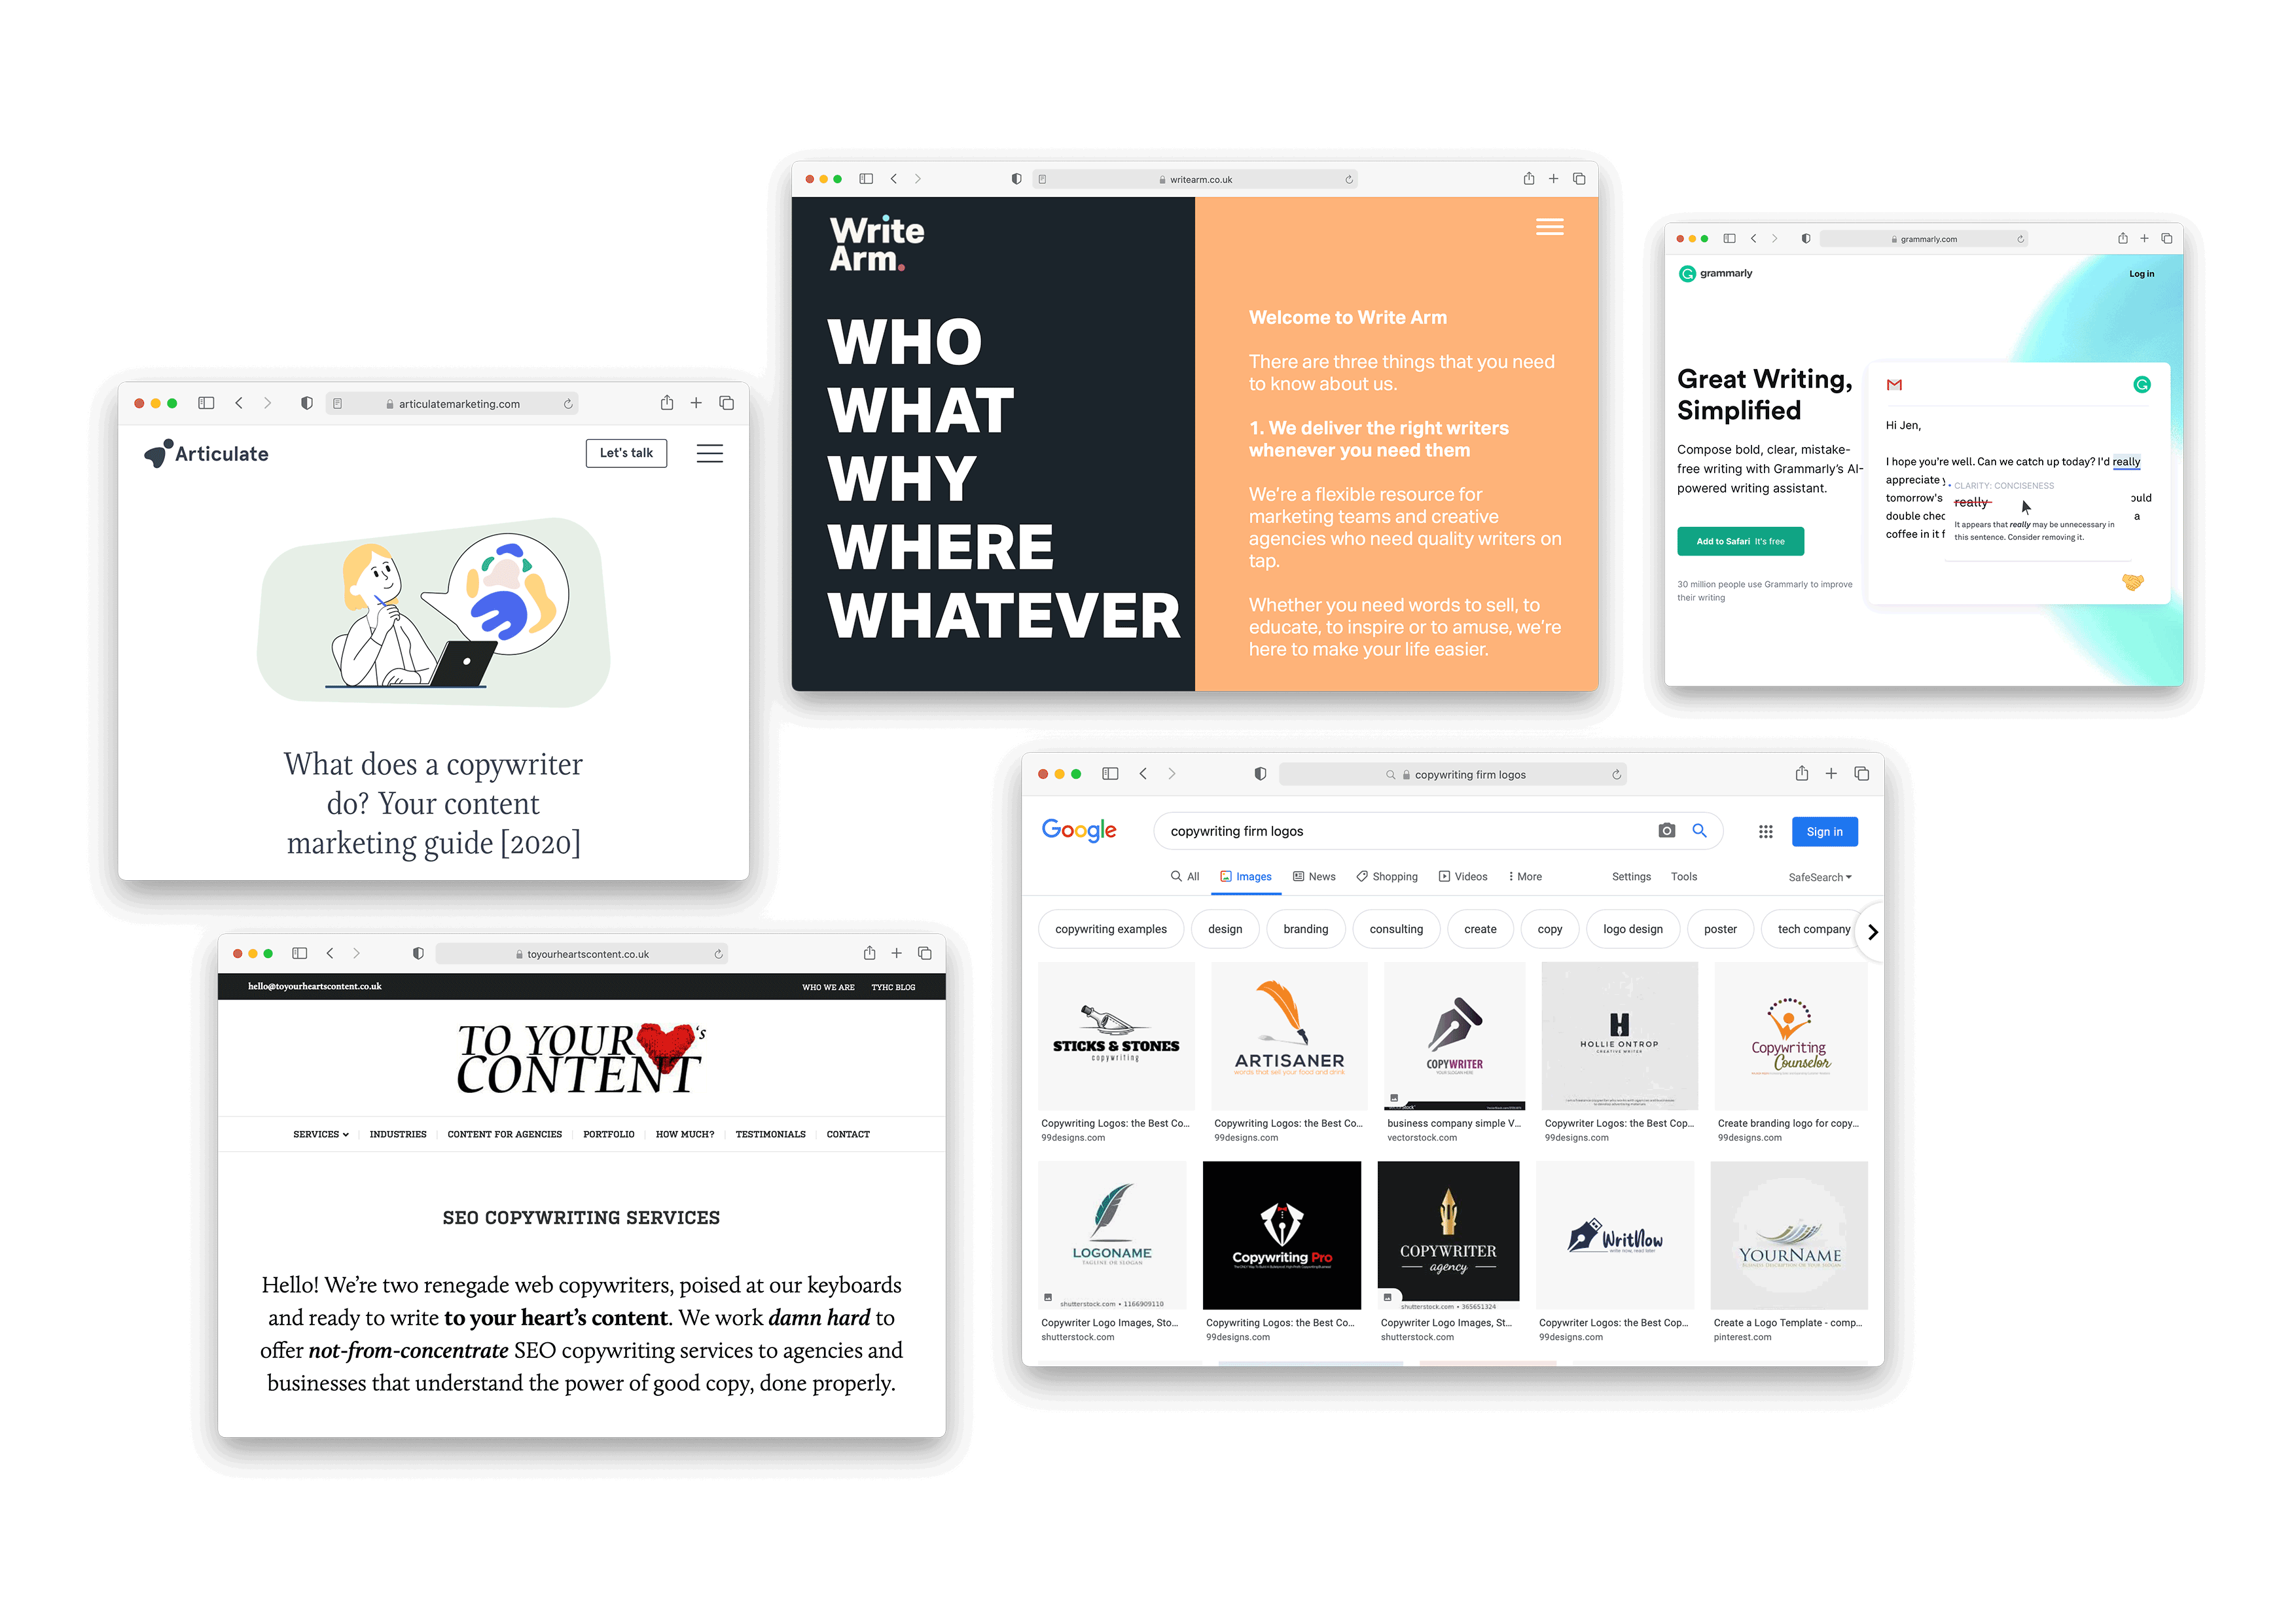 Screenshots of online research about client Copy and Proof